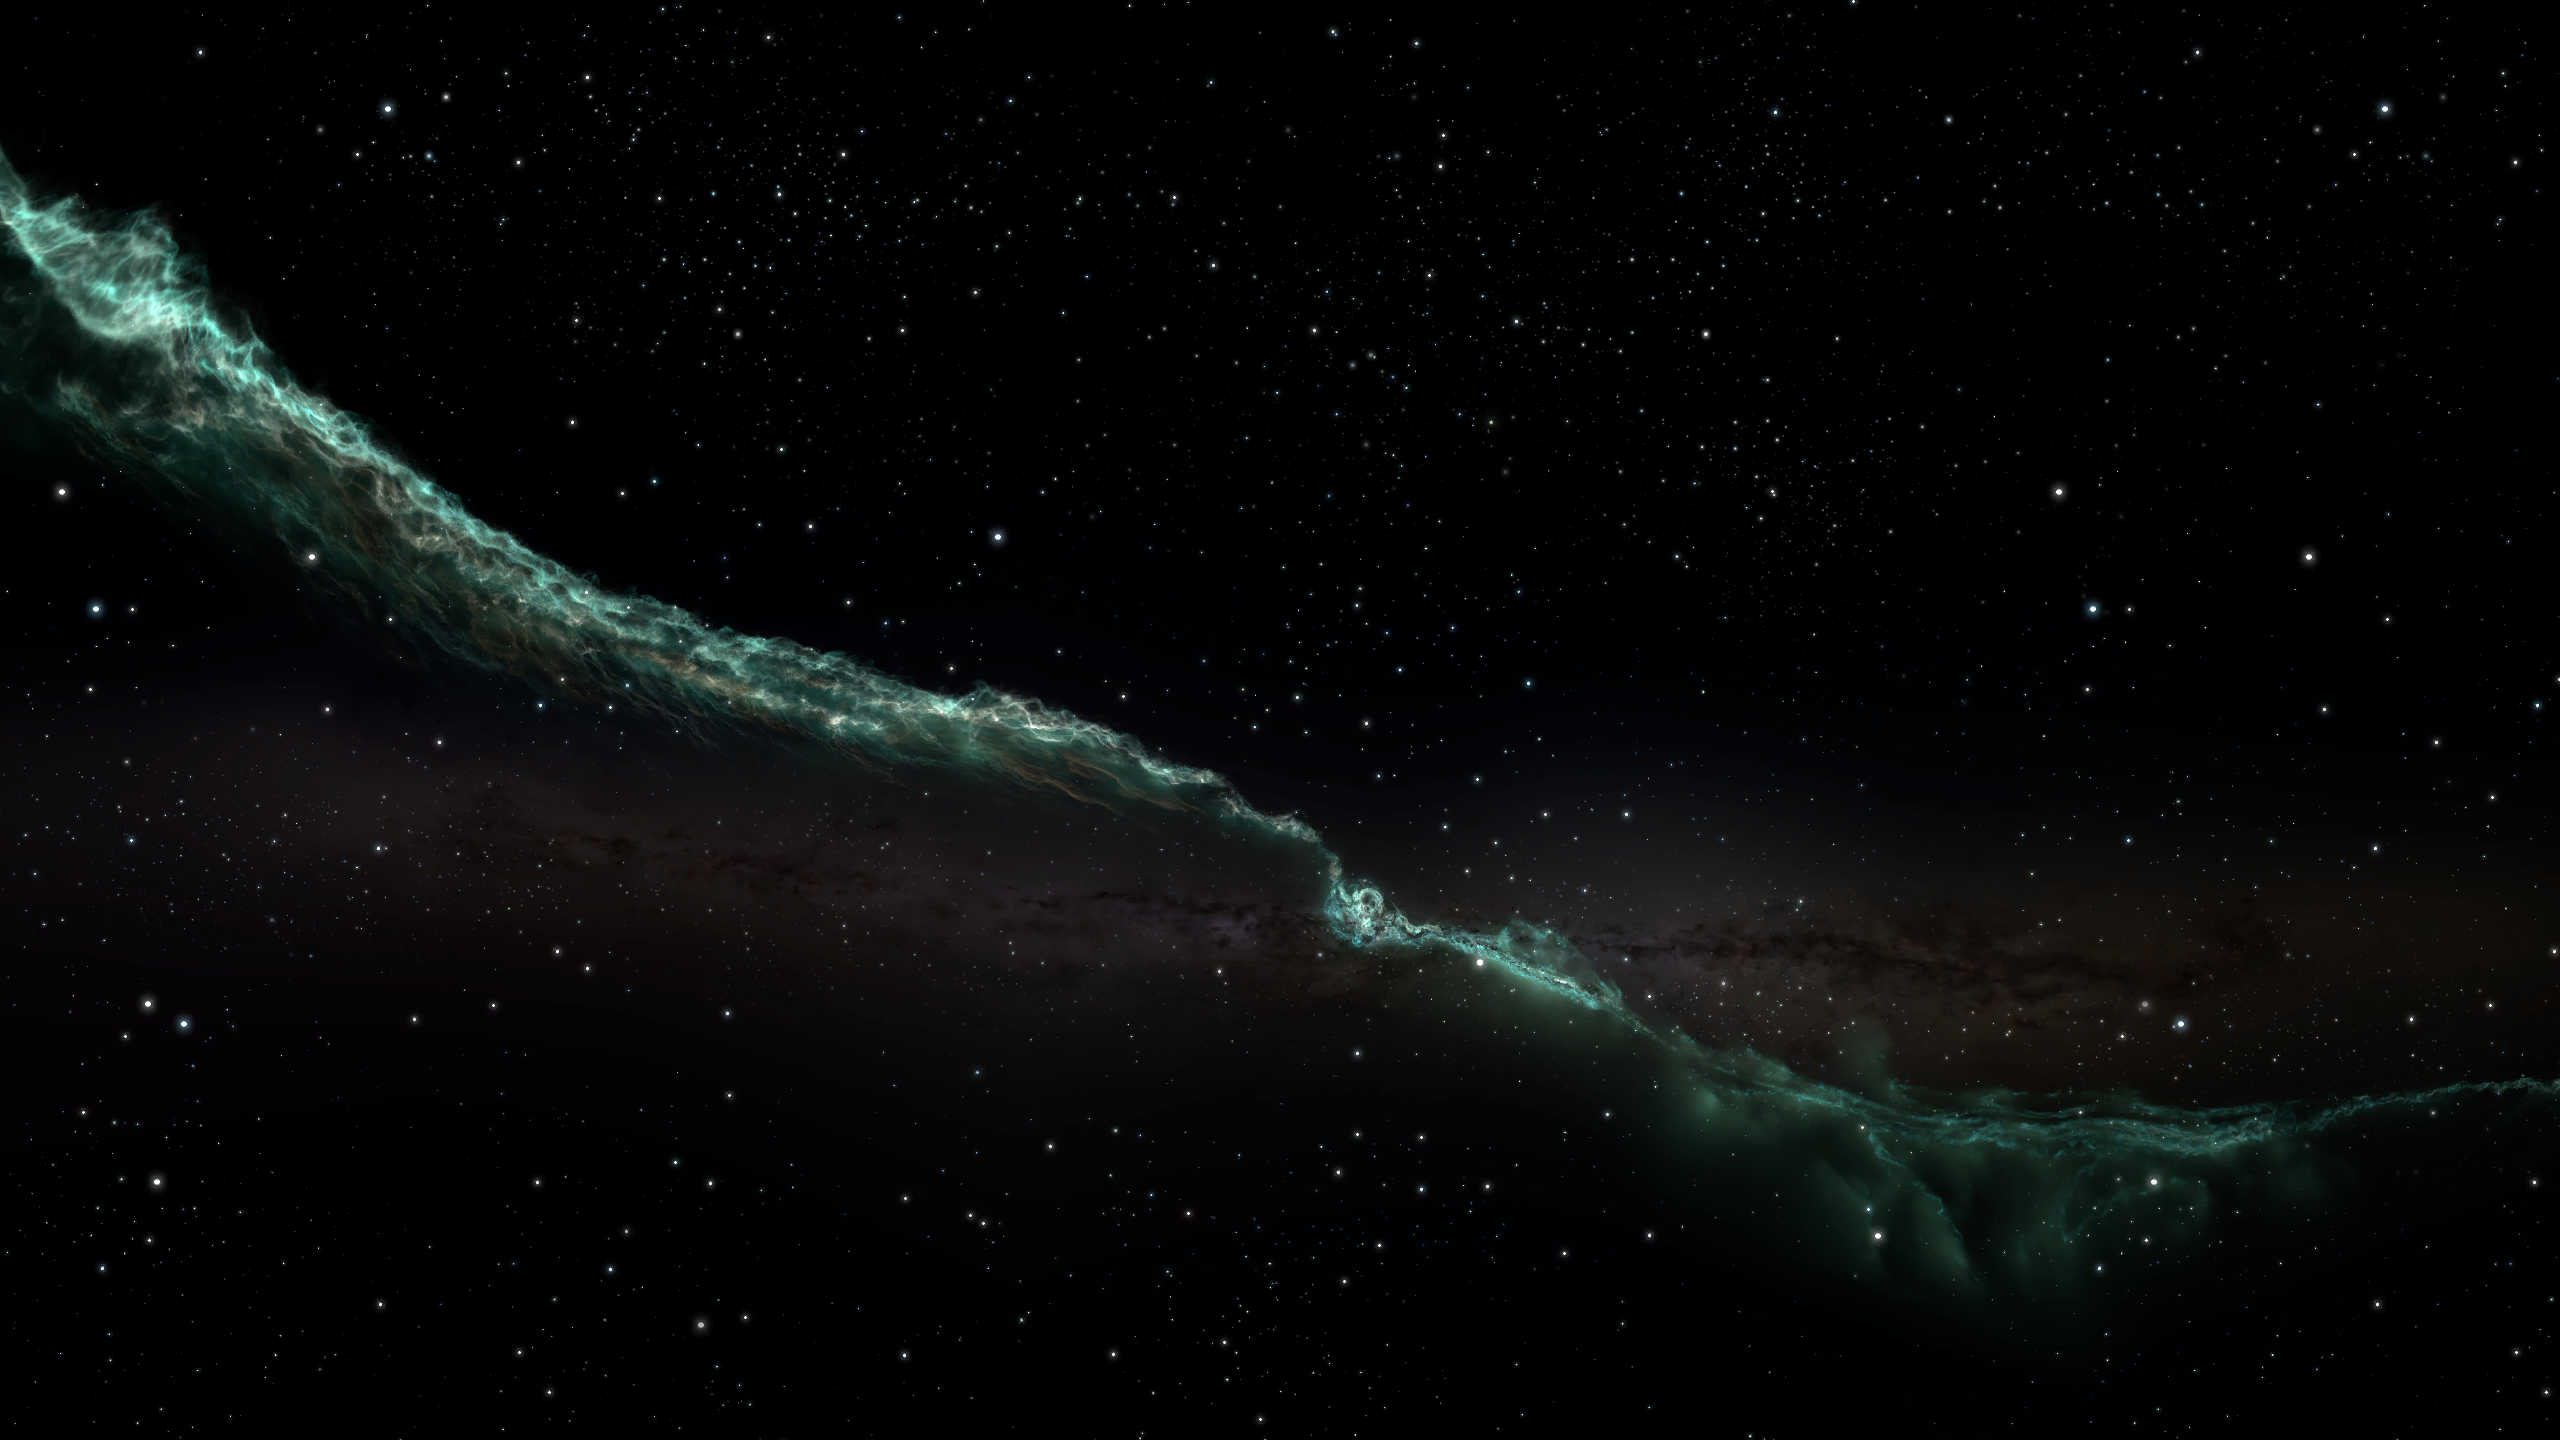 Eve Online Nebula Wallpaper - Pics about space